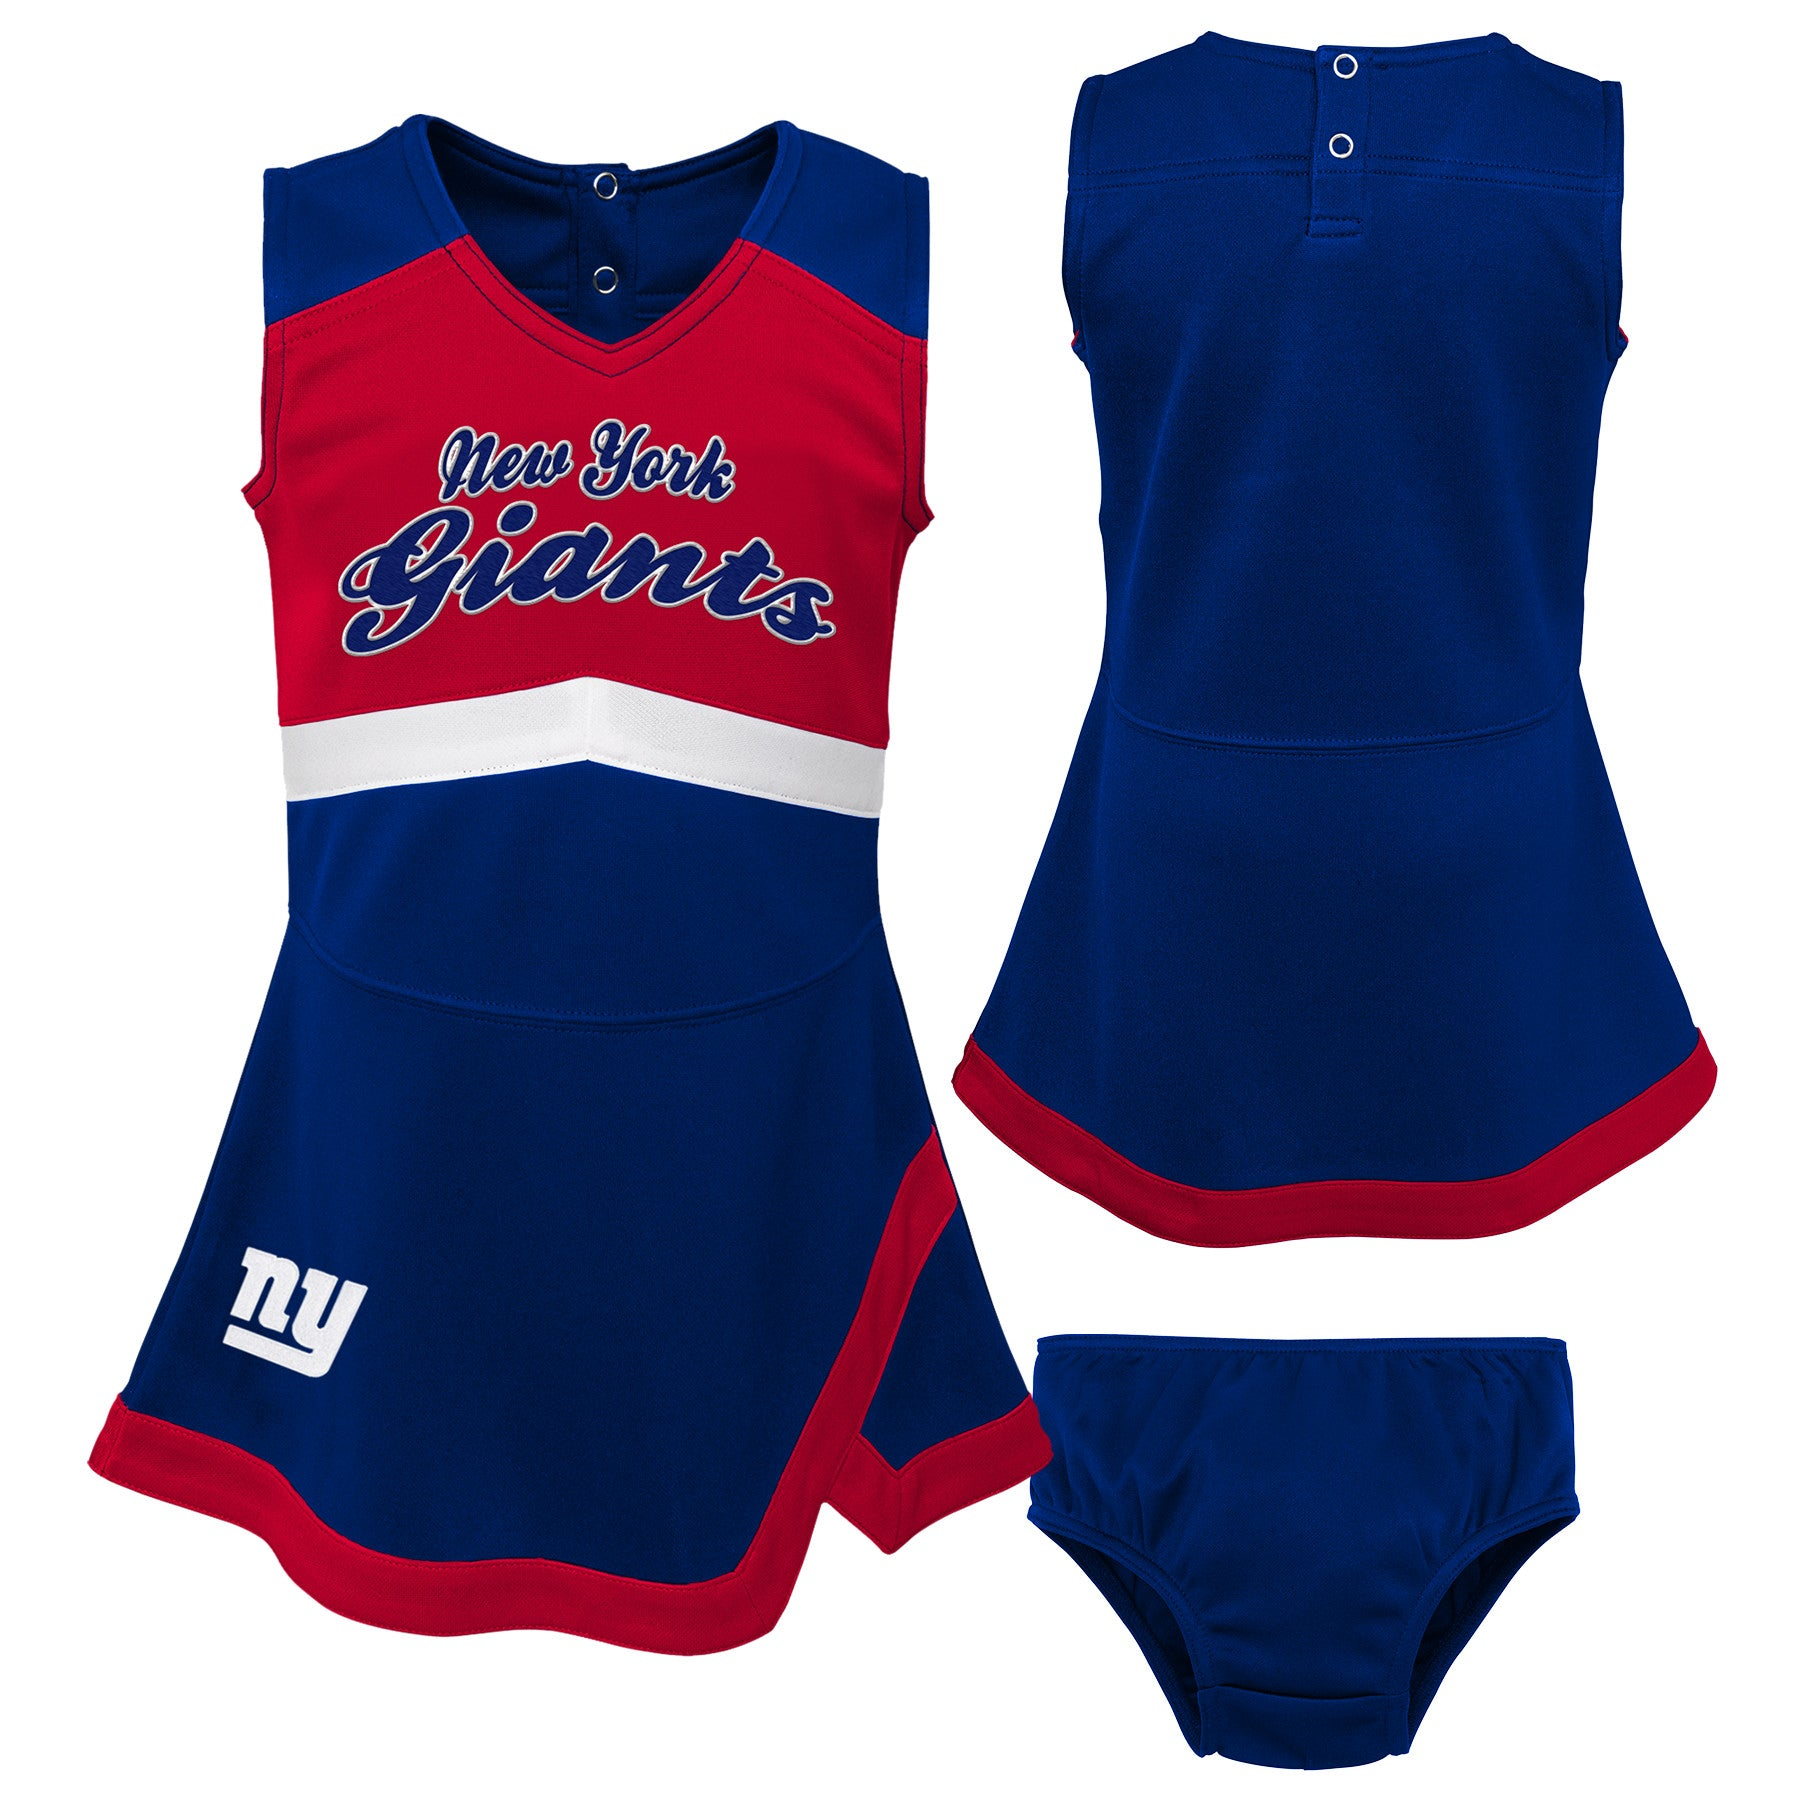 4852262ab New York Giants Infant Cheerleader Dress – babyfans